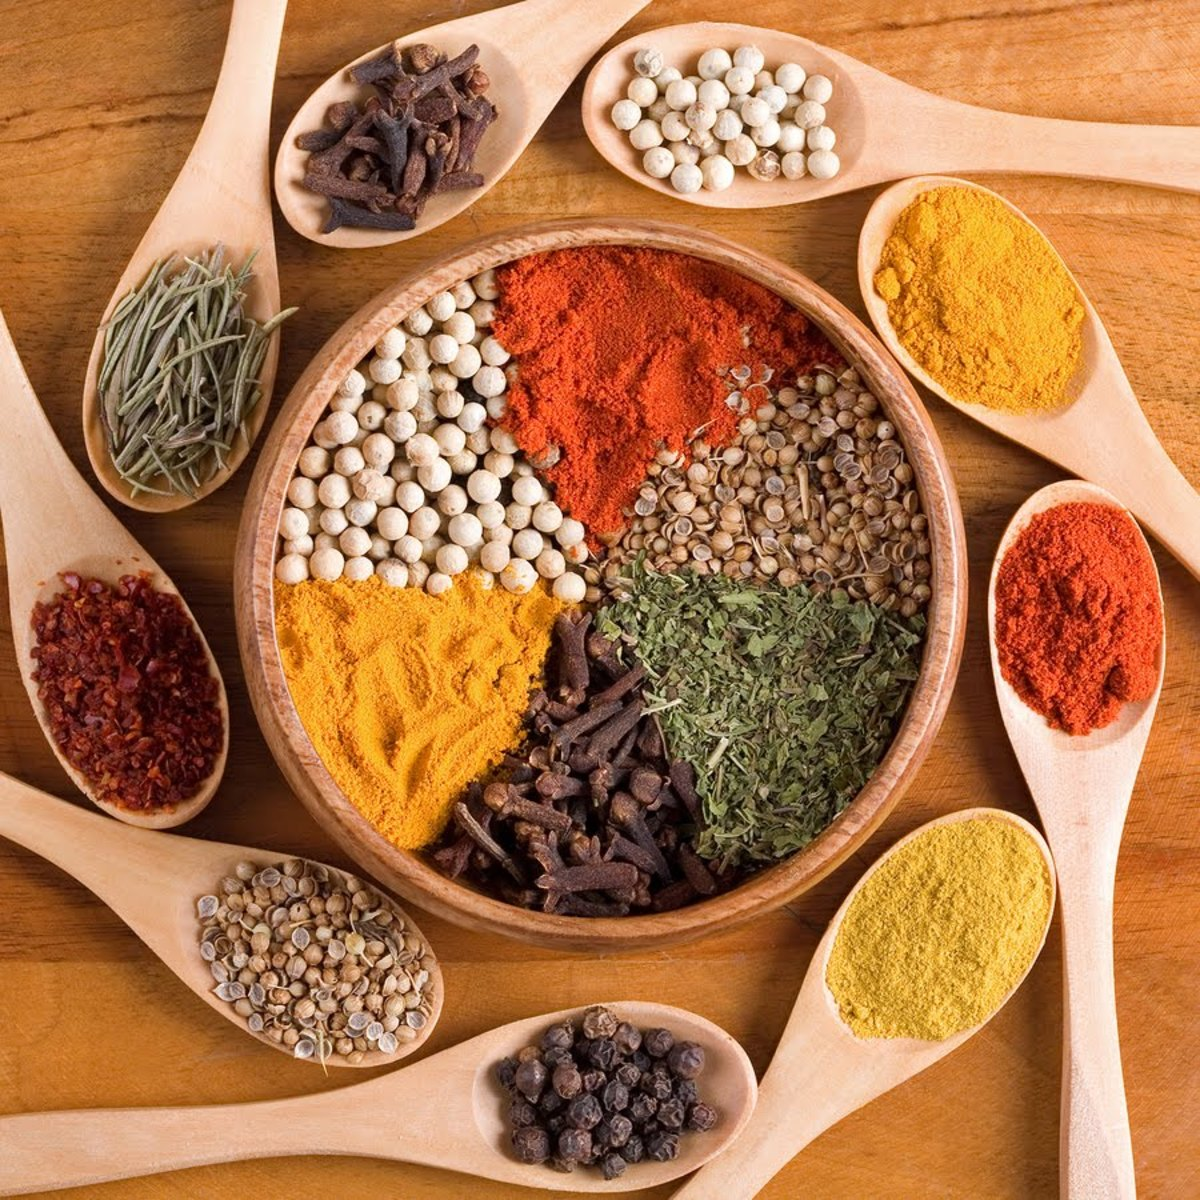 Top 4 Spices For Glowing Skin